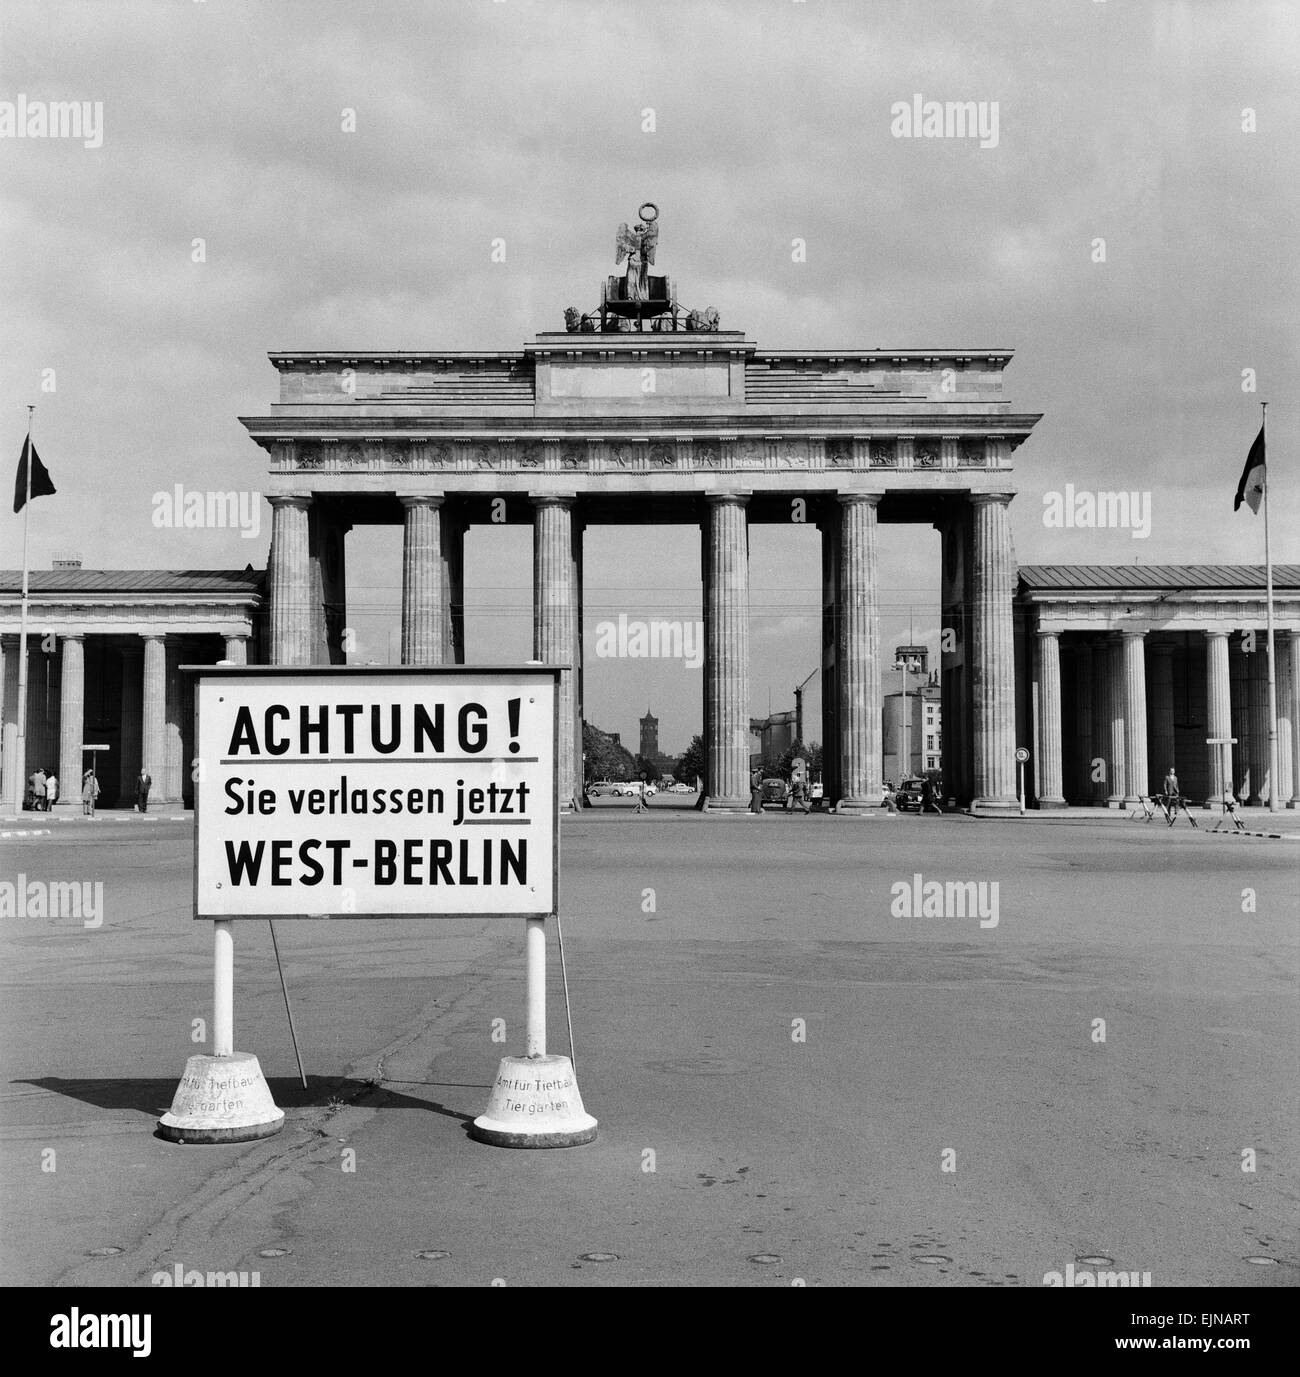 east west berlin border 13th august 1961 stock photo 80374780 alamy. Black Bedroom Furniture Sets. Home Design Ideas